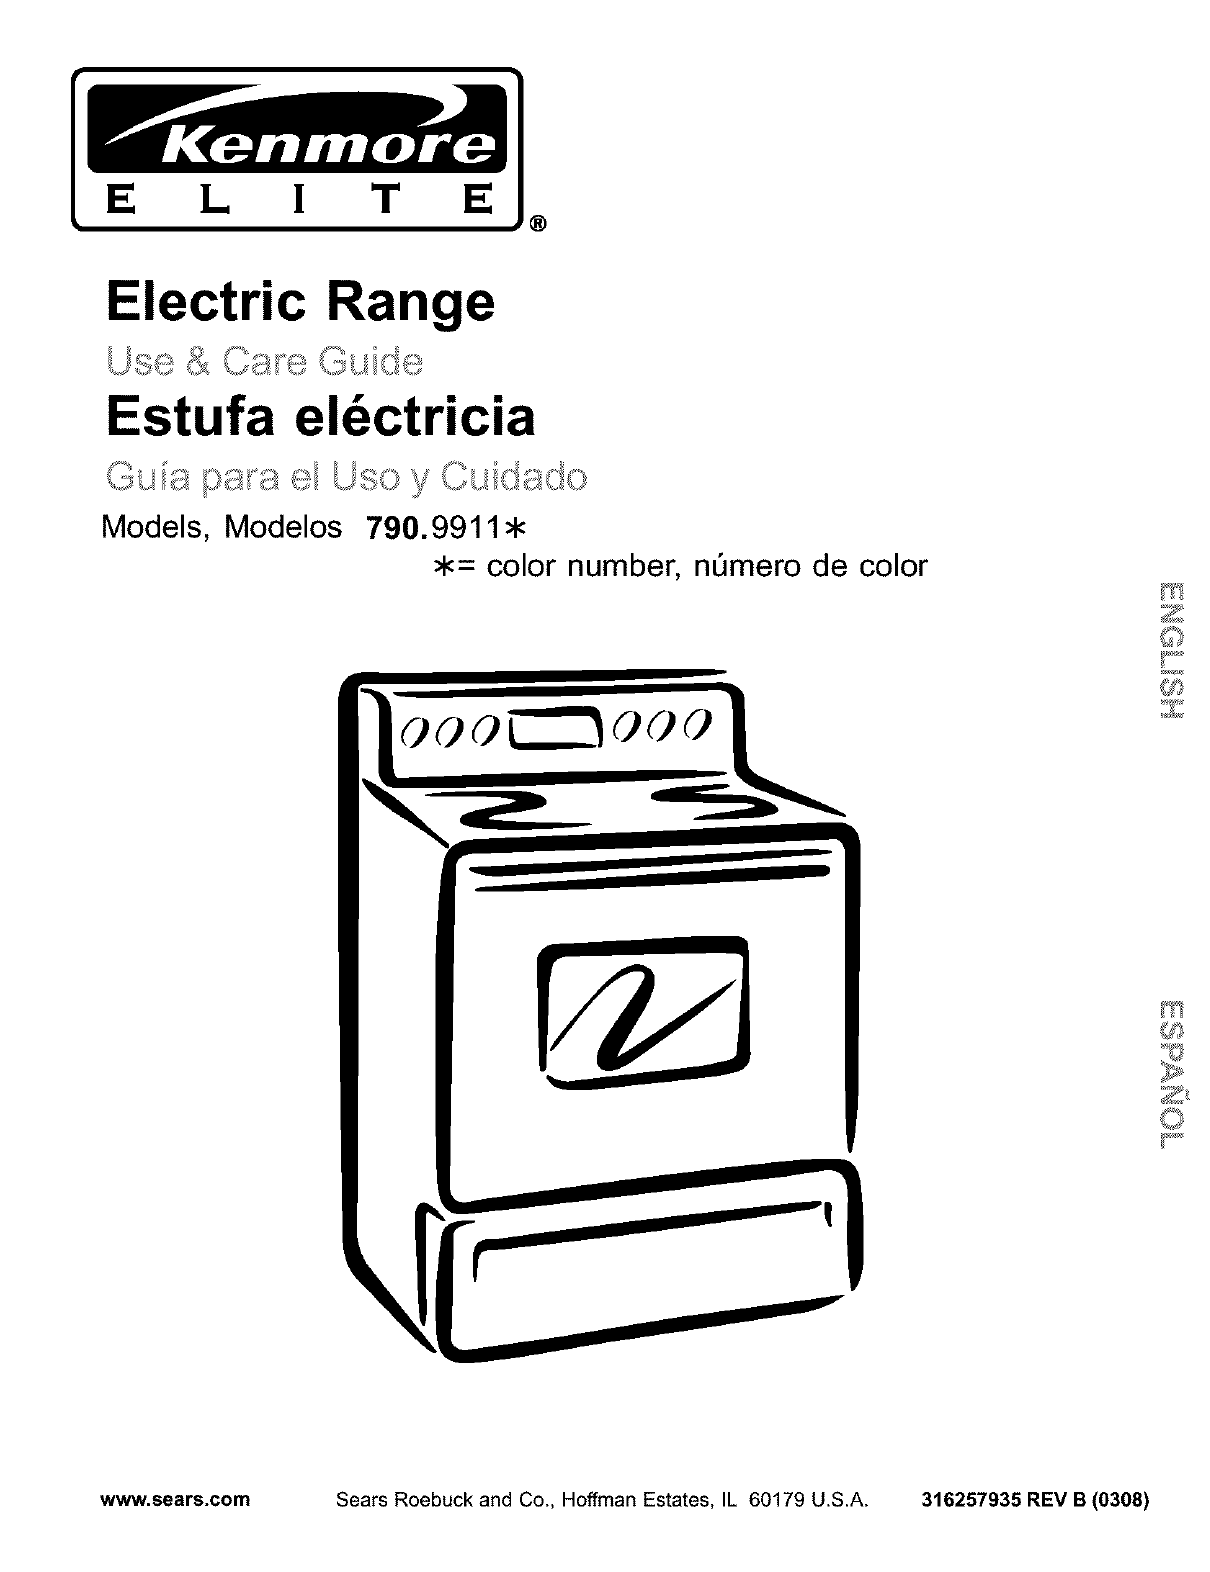 Kenmore 790 Electric Range Wiring Diagram. Kenmore Double ... on